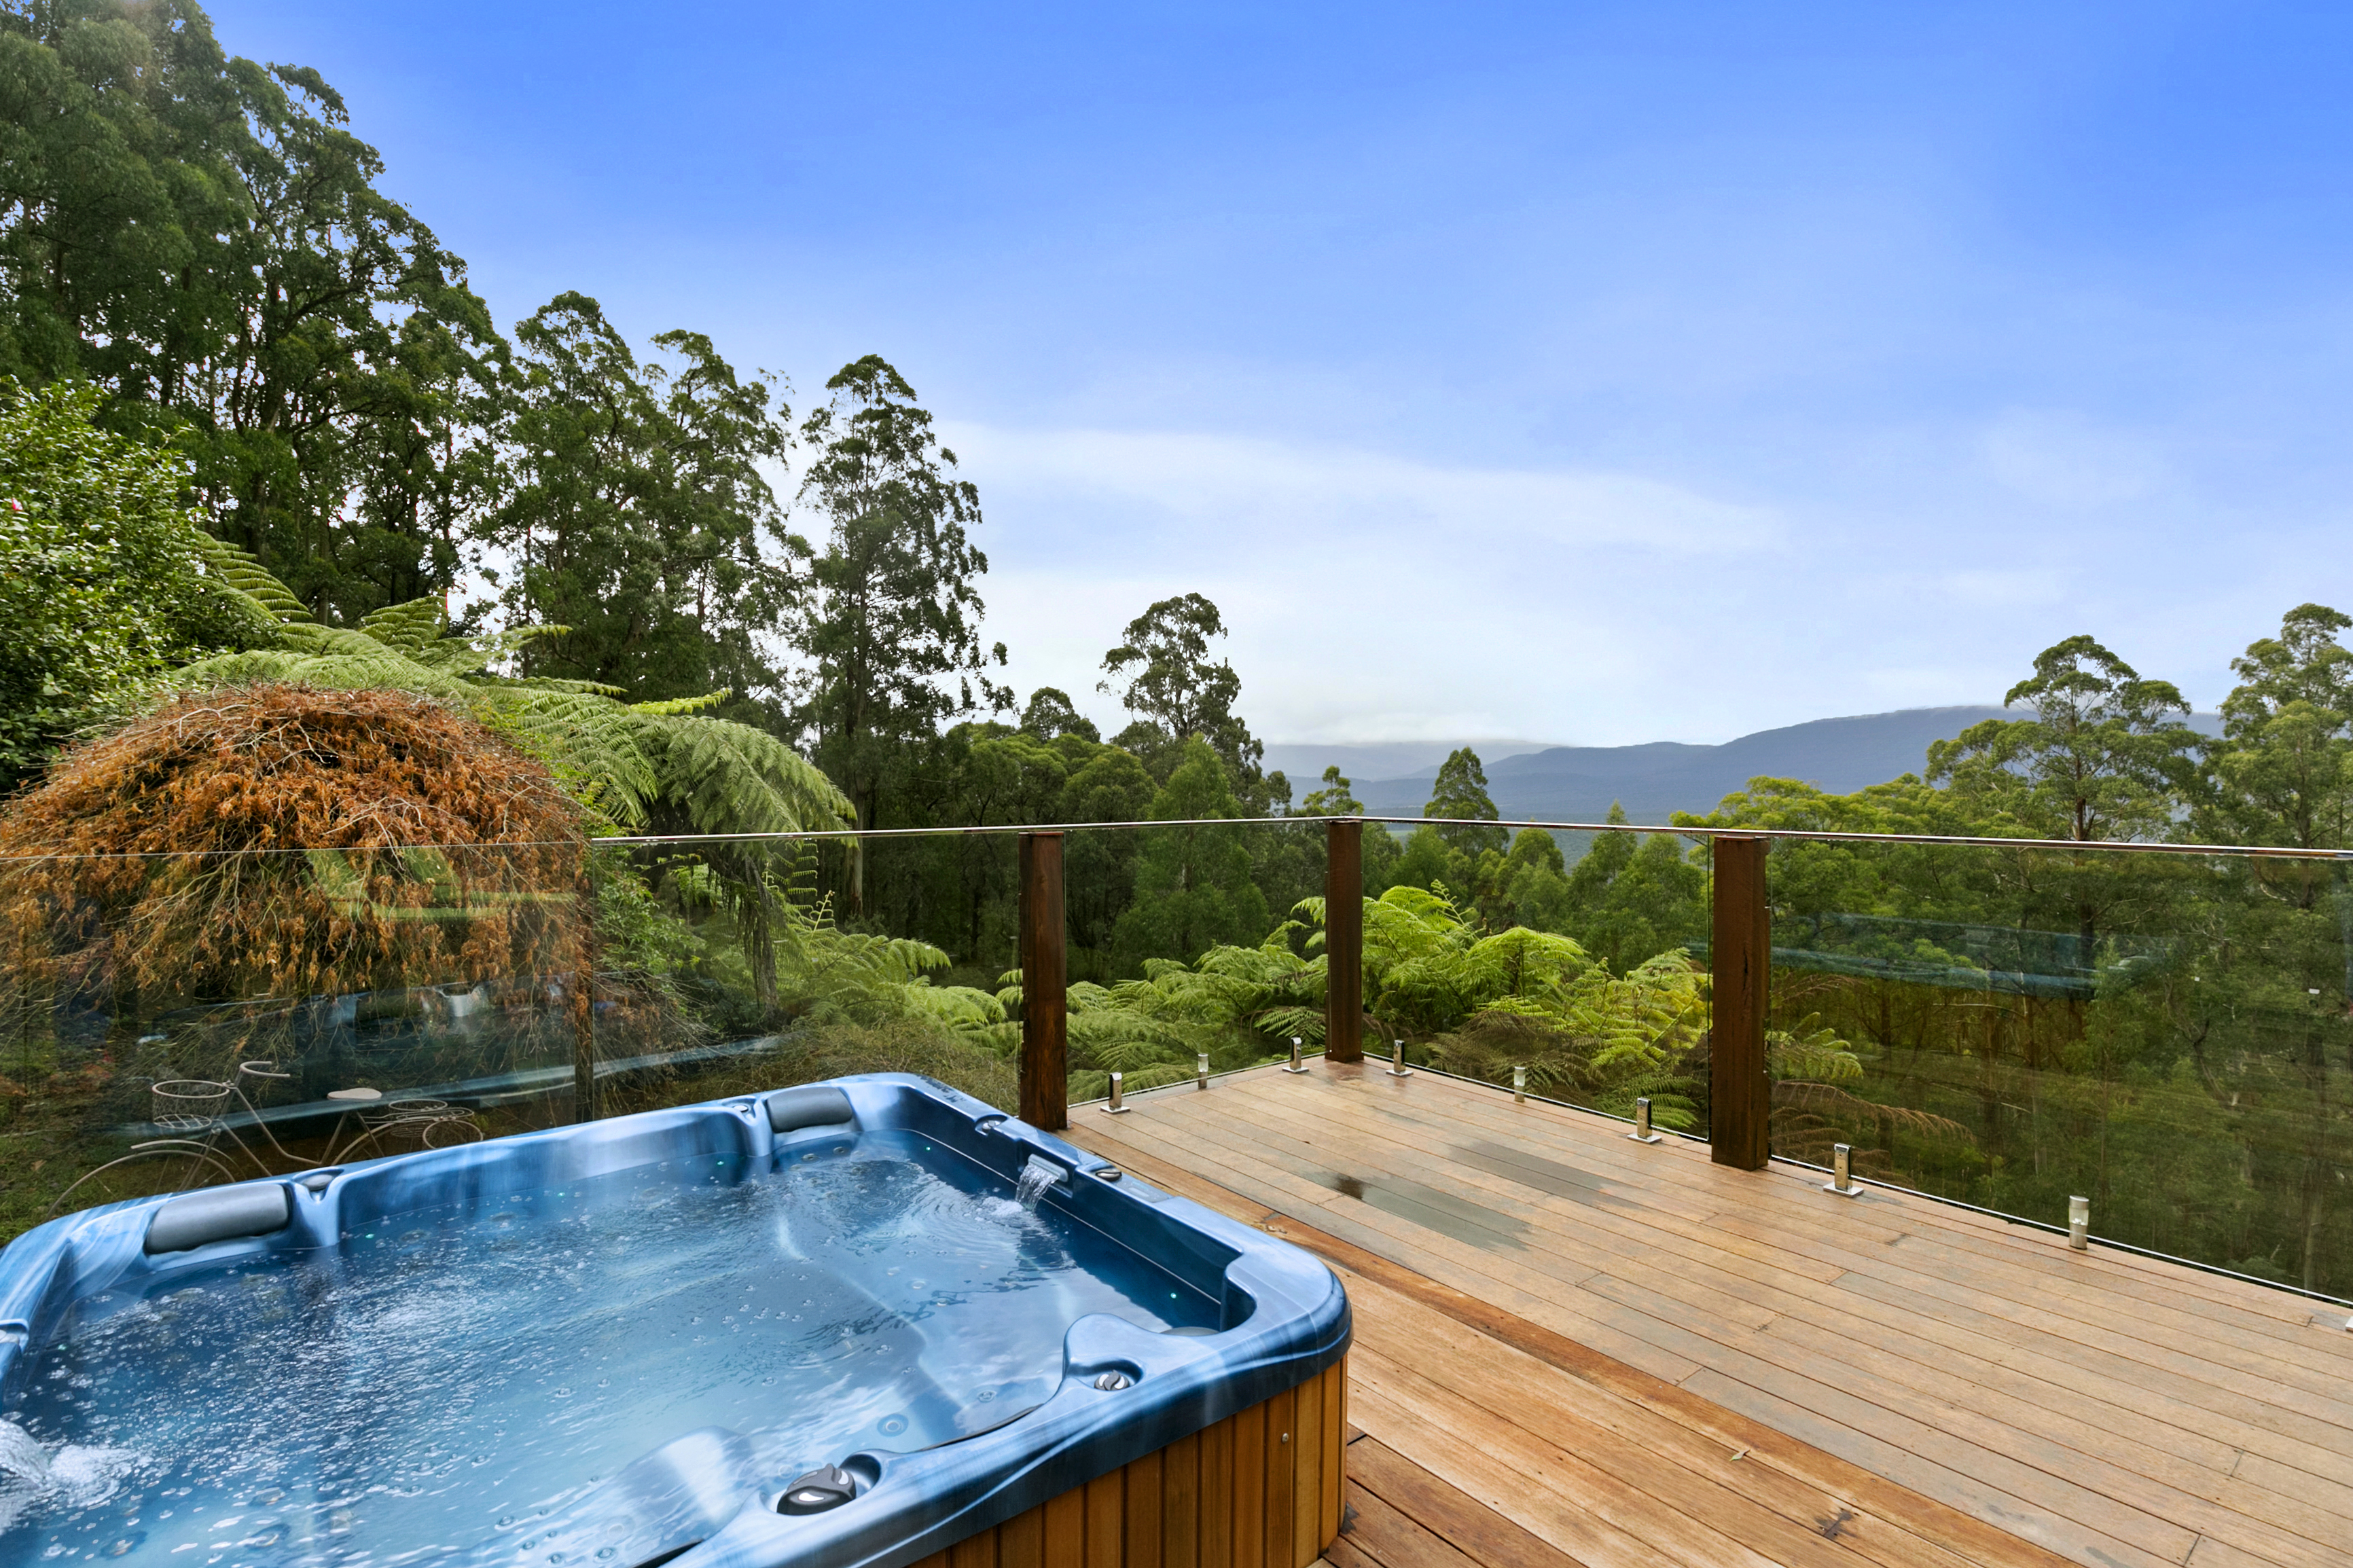 035_Open2view_ID417900-135_Maroondah_Hwy_Narbethong